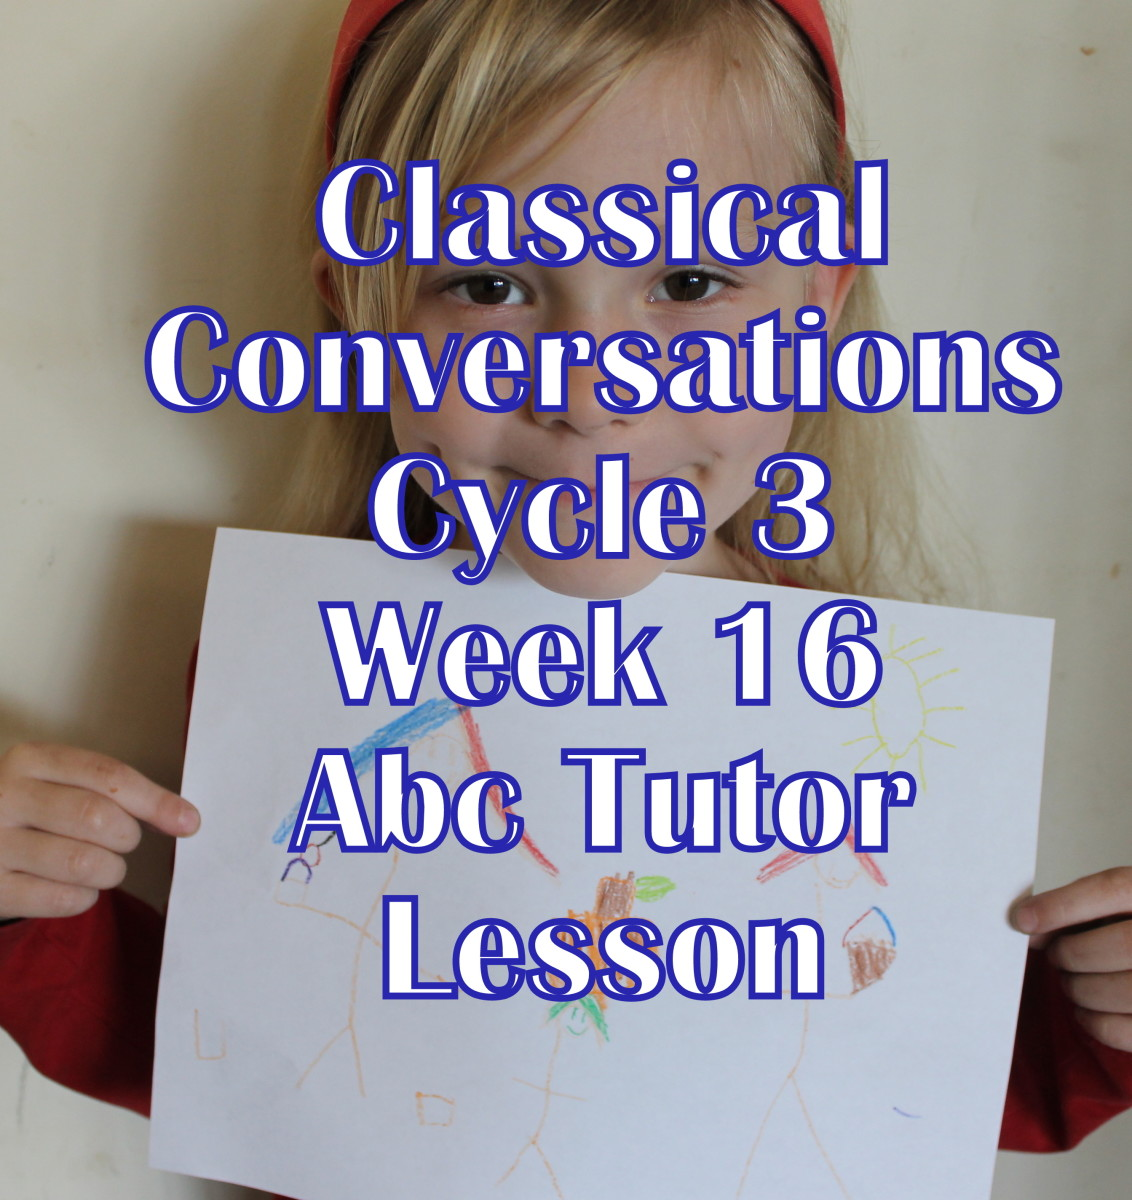 Classical Conversations CC Cycle 3 Week 16 Lesson for Abecedarians - CC C3W16